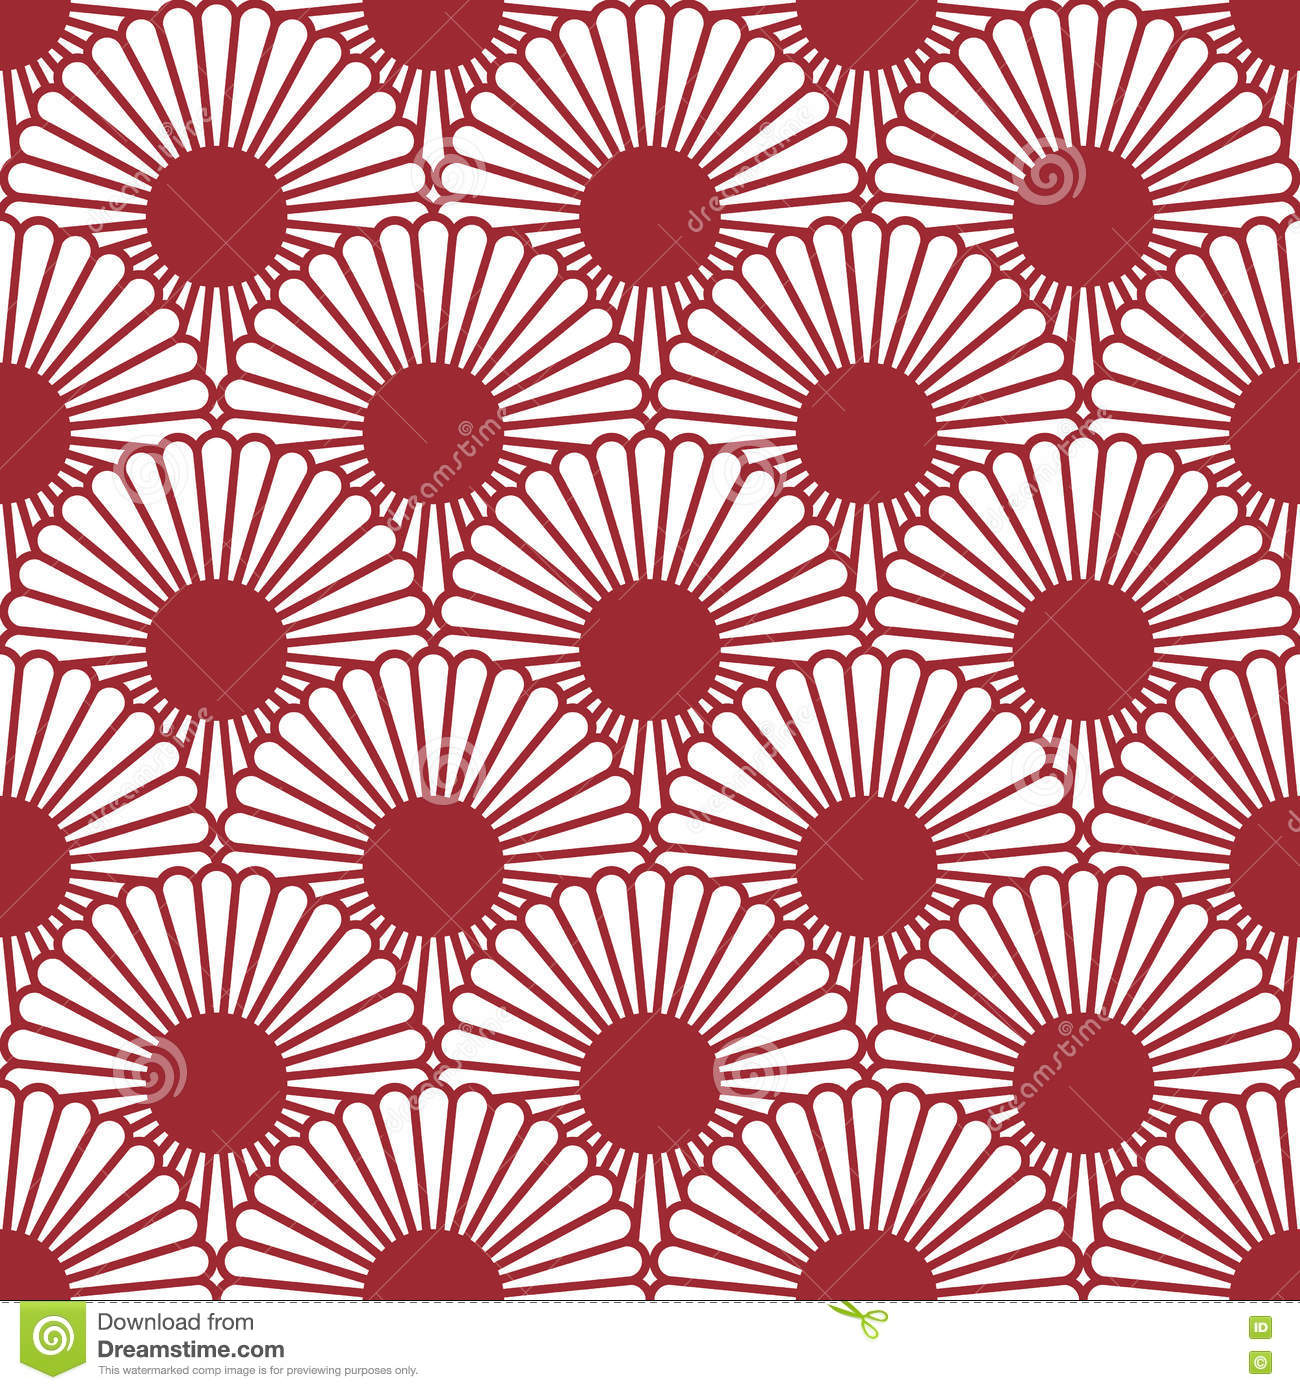 Pink floral seamless vector background floral hrysanthemum seamless - Background Chrysanthemum Endless Fabric Flower Japanese Paper Pattern Seamless